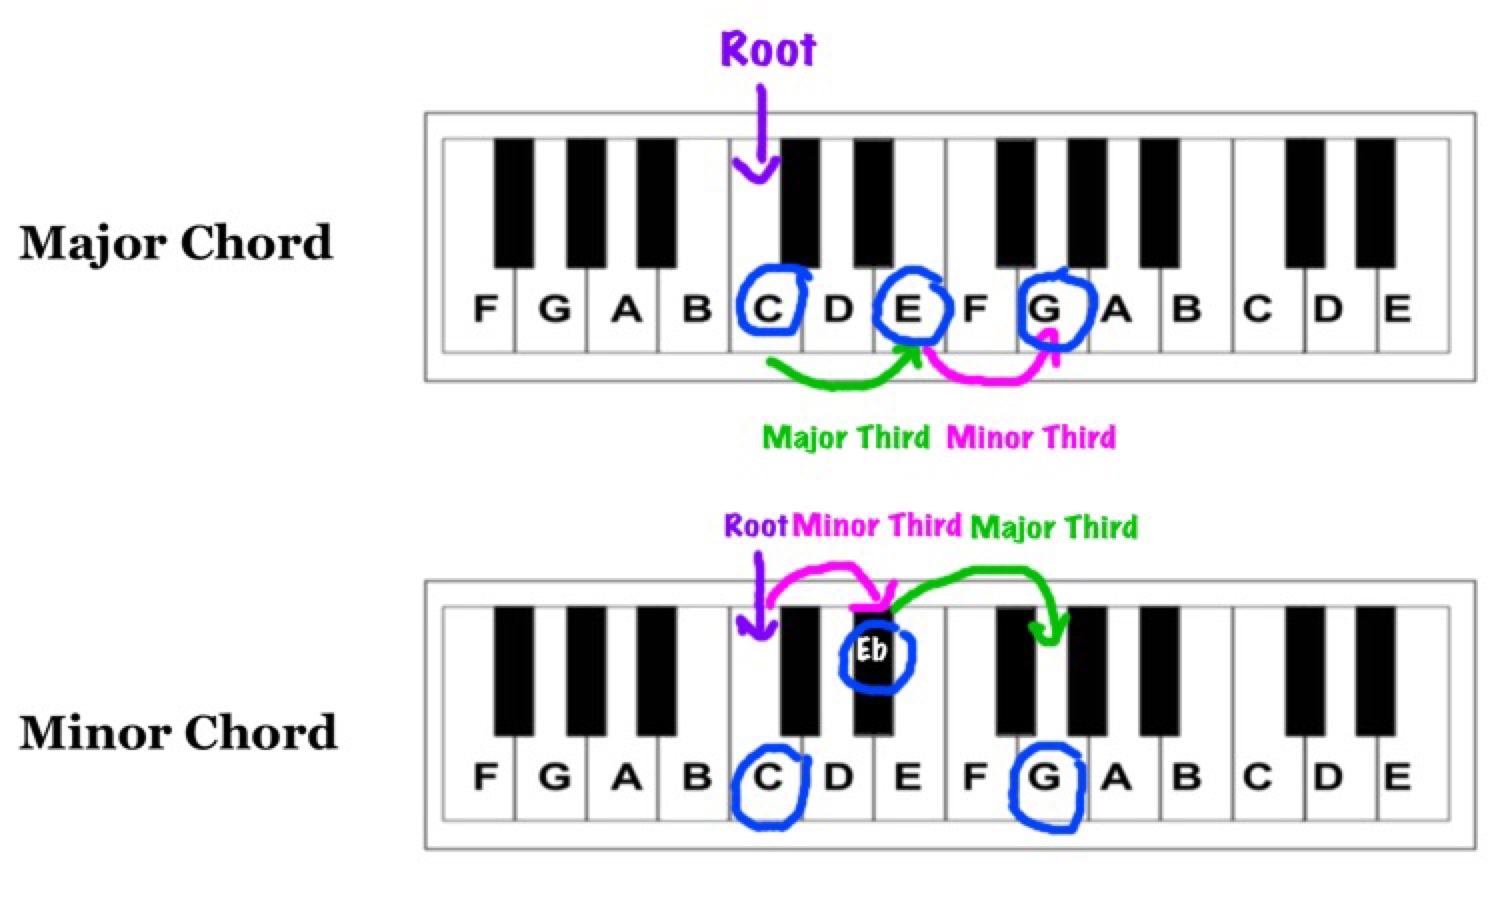 major chord vs minor chord: just switch the order of the 3 half steps and the 4 half steps